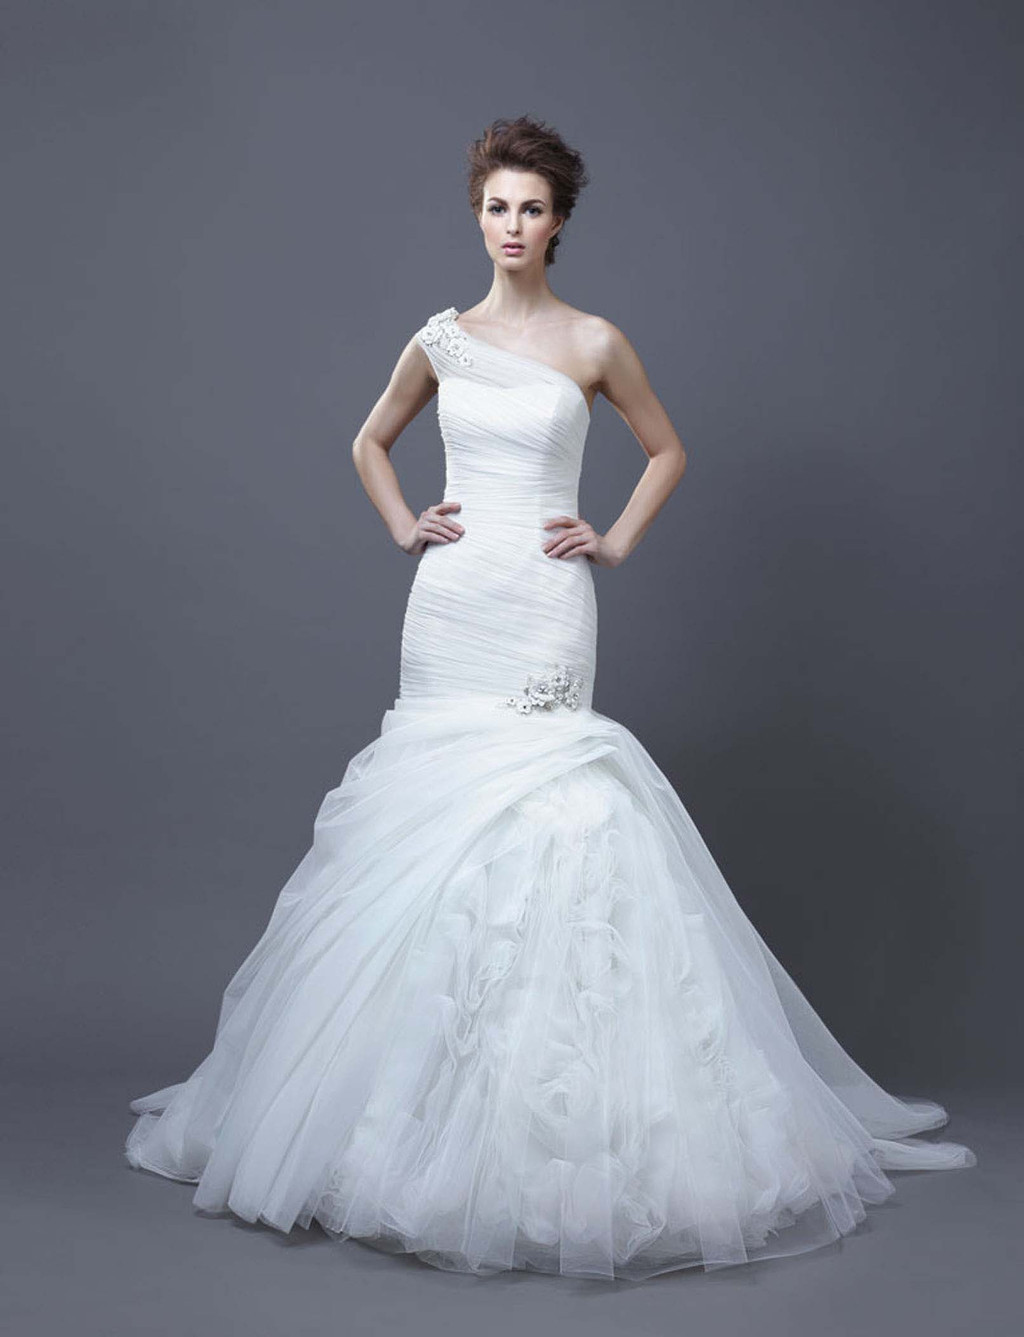 2013-wedding-dress-by-enzoani-bridal-hadara.full